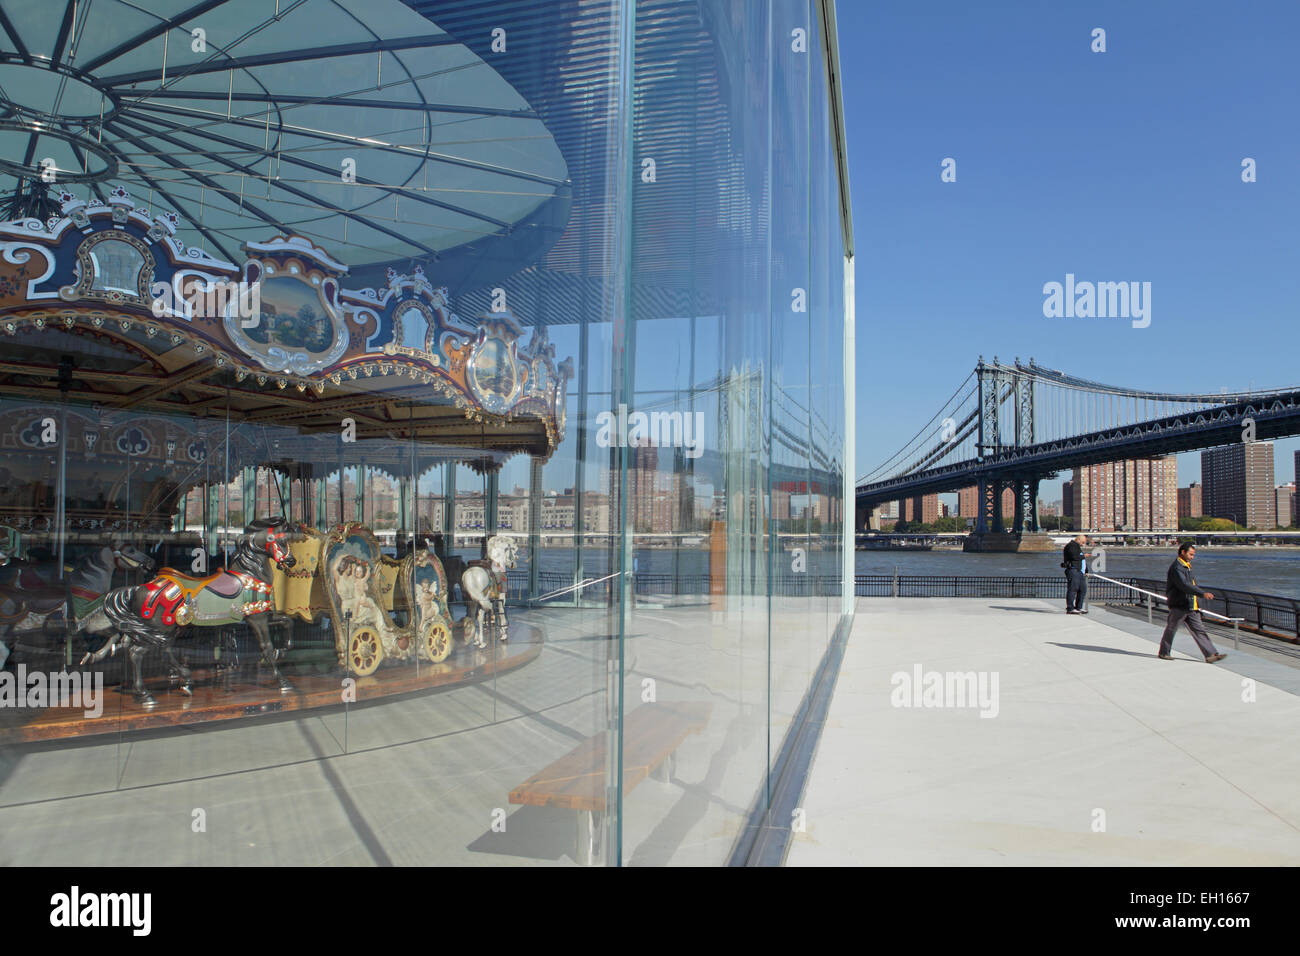 Jane's Carousel in Brooklyn Bridge Park with the Manhattan Bridge in the background - Stock Image